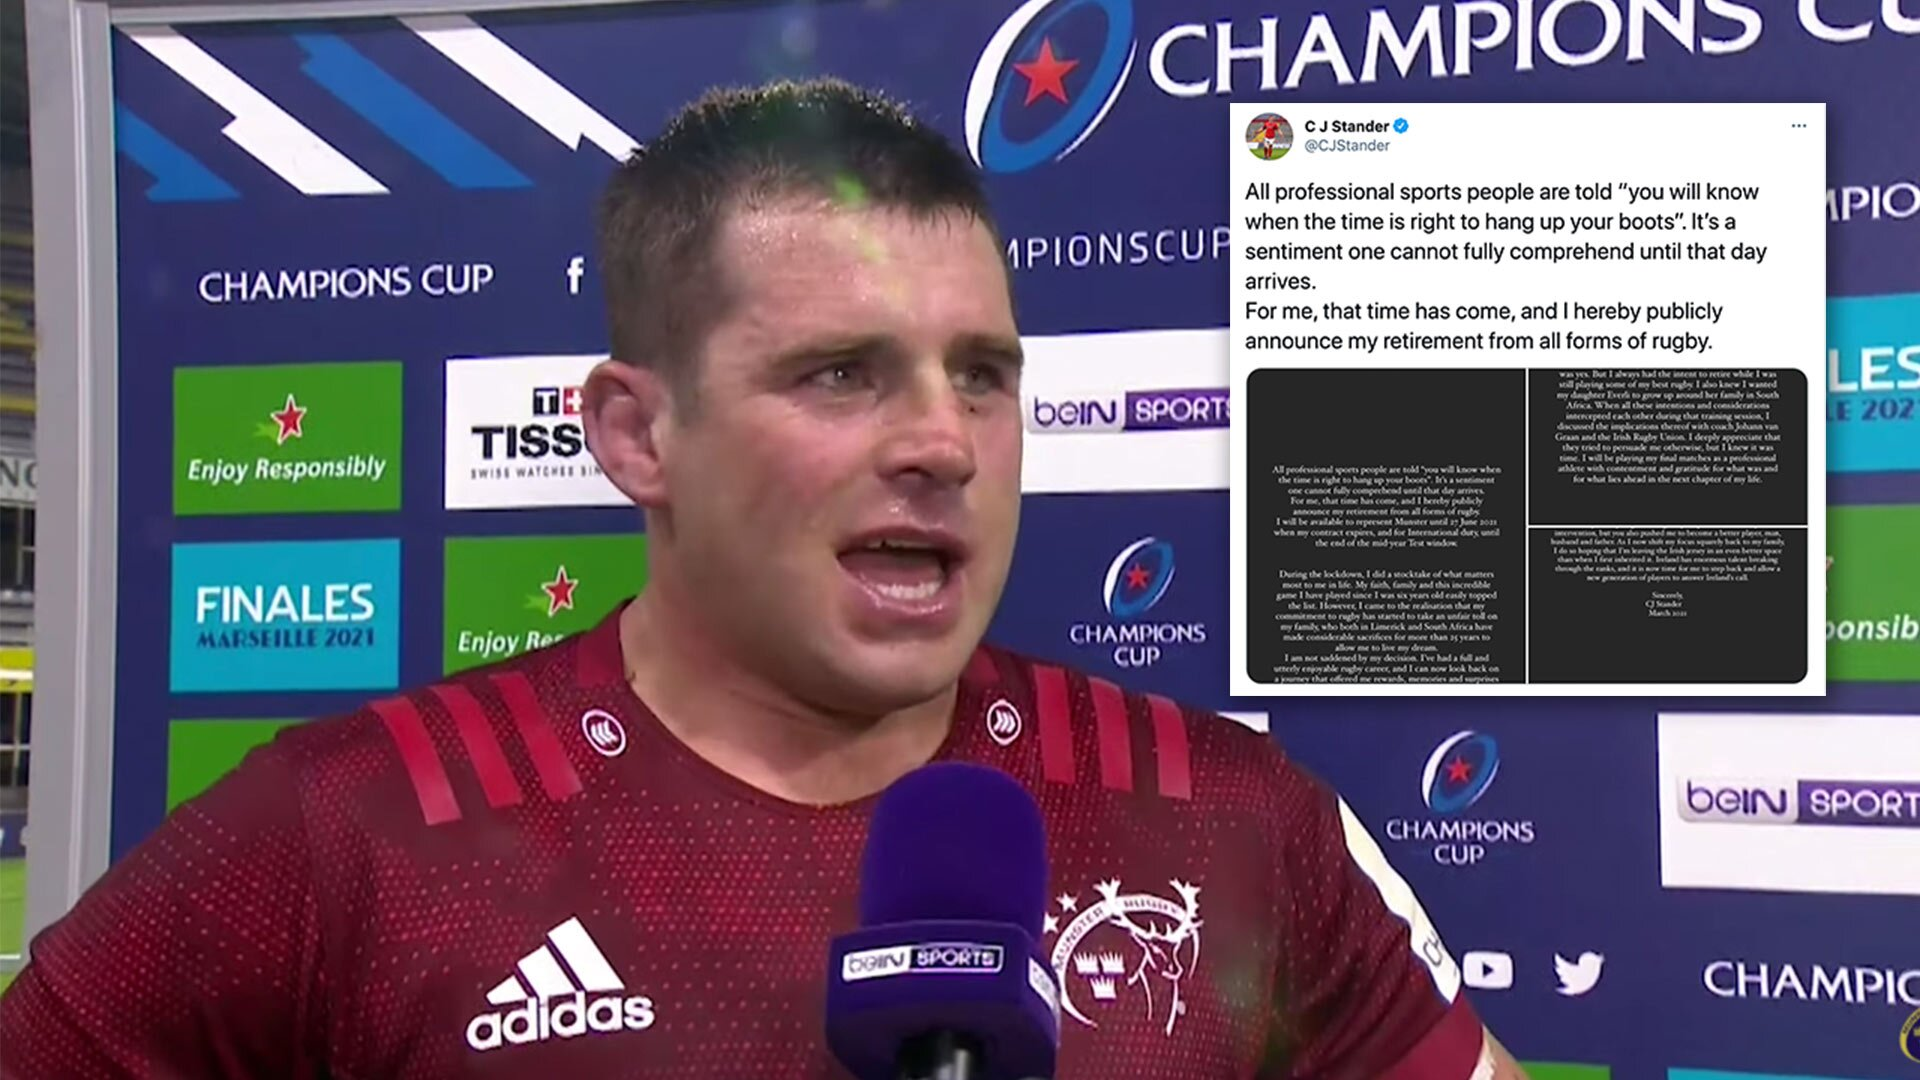 Fans and former players react to CJ Stander and his shock retirement from rugby